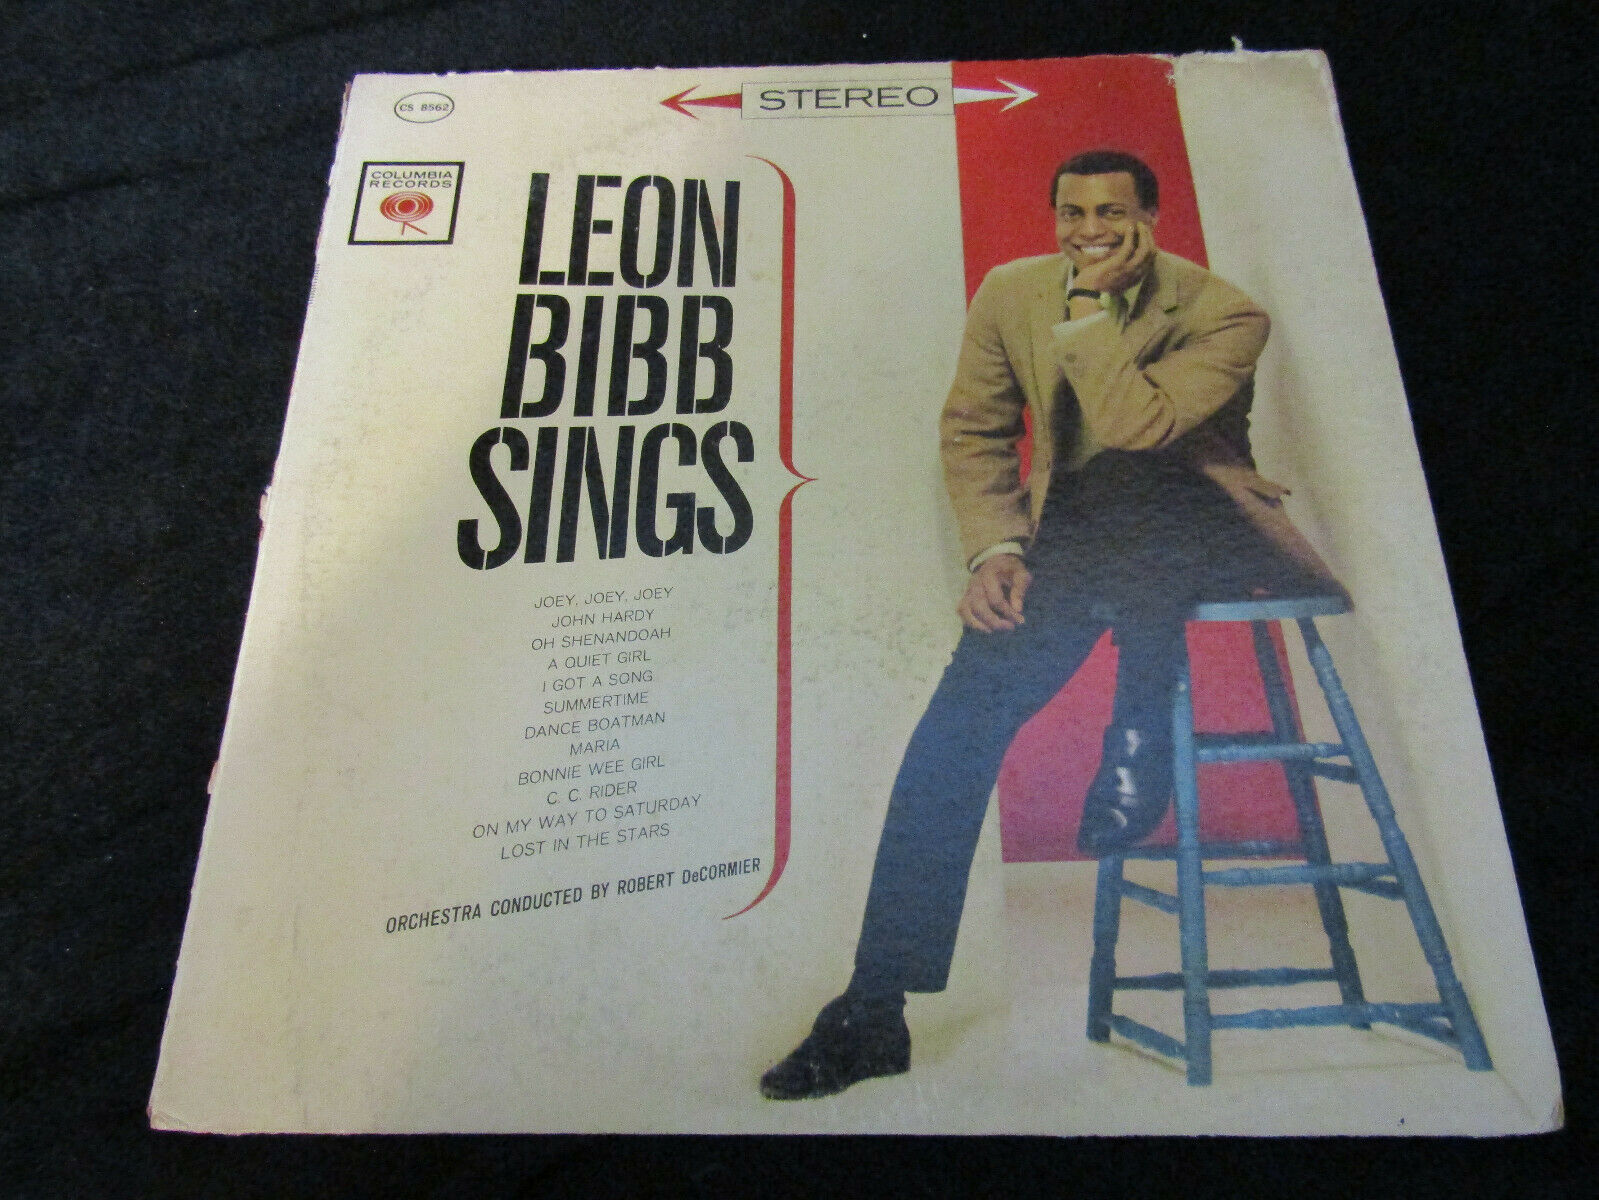 Primary image for Leon Bibb Sings Columbia CS 8562 Stereo Vinyl Record LP Six Eye